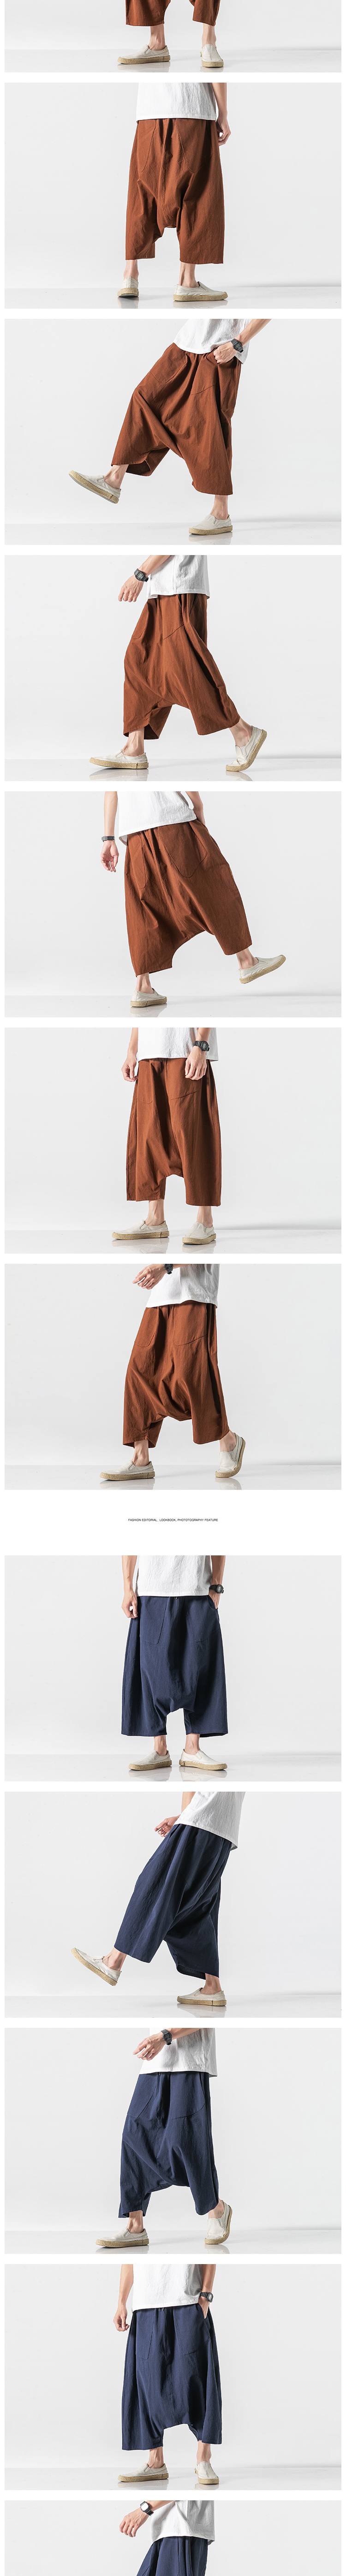 Sinicism Store Men Solid Summer Cross Pants Mens 2020 Japanese Wide Leg Trousers Male Linen Chinese Style Pants Clothing 5XL 30